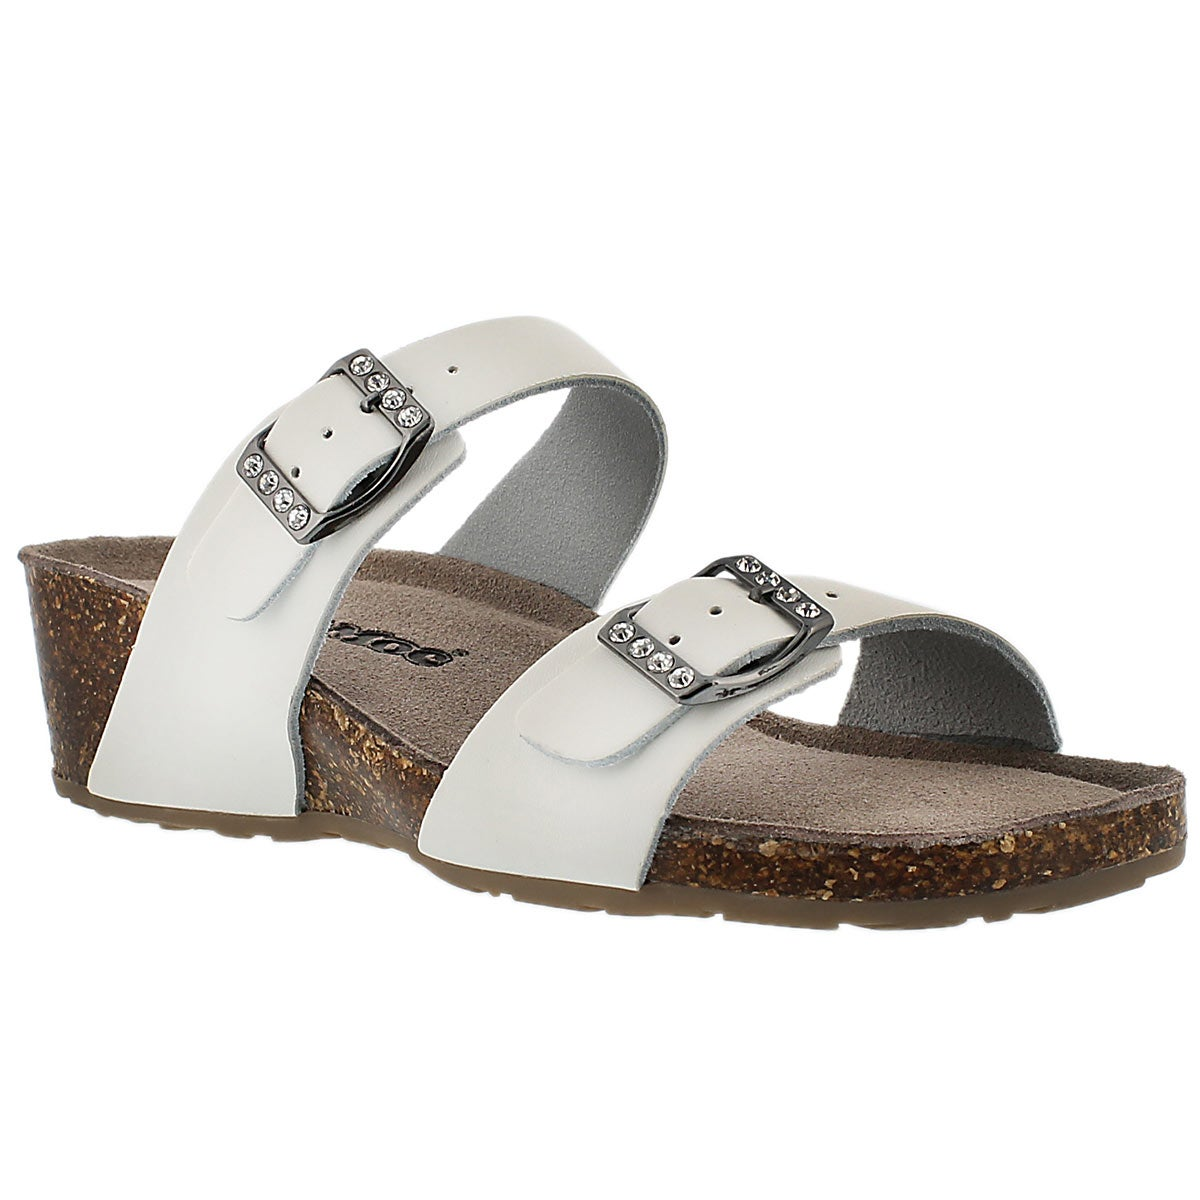 Women's ASHLYNN 2 white memory foam sandals